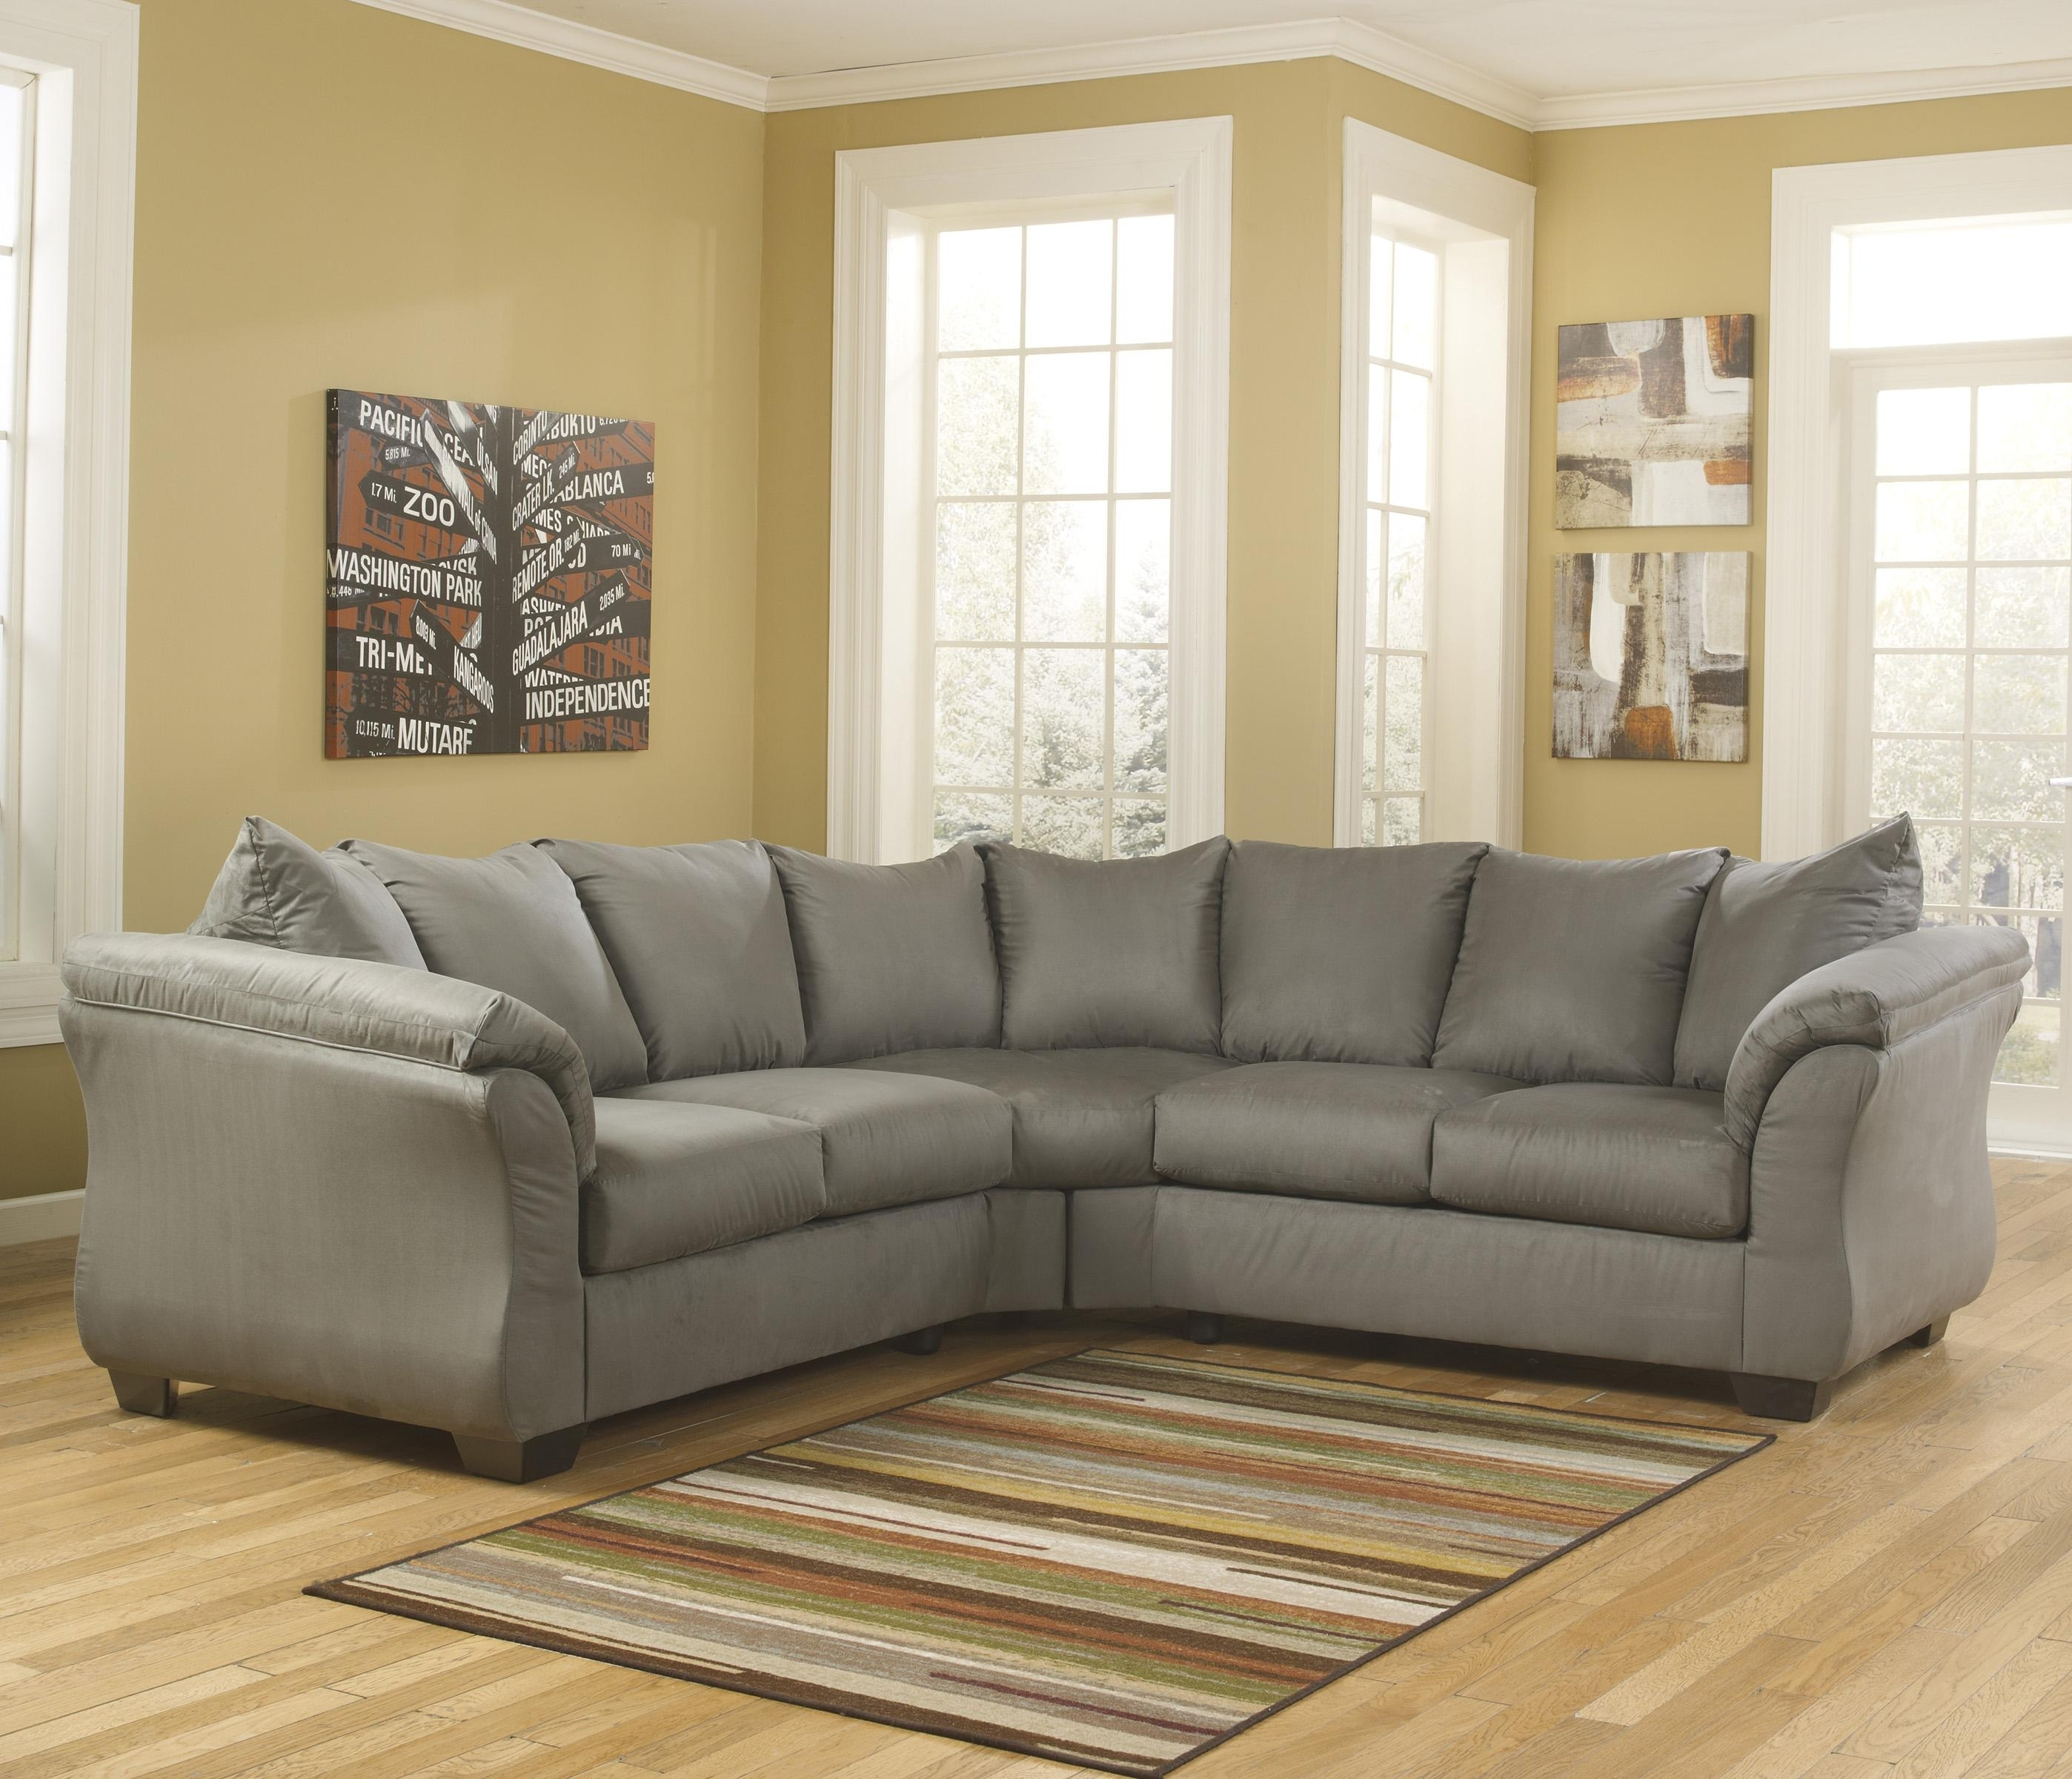 Darcy – Cobblestone Sectional Sofasignature Designashley With St Cloud Mn Sectional Sofas (View 2 of 10)